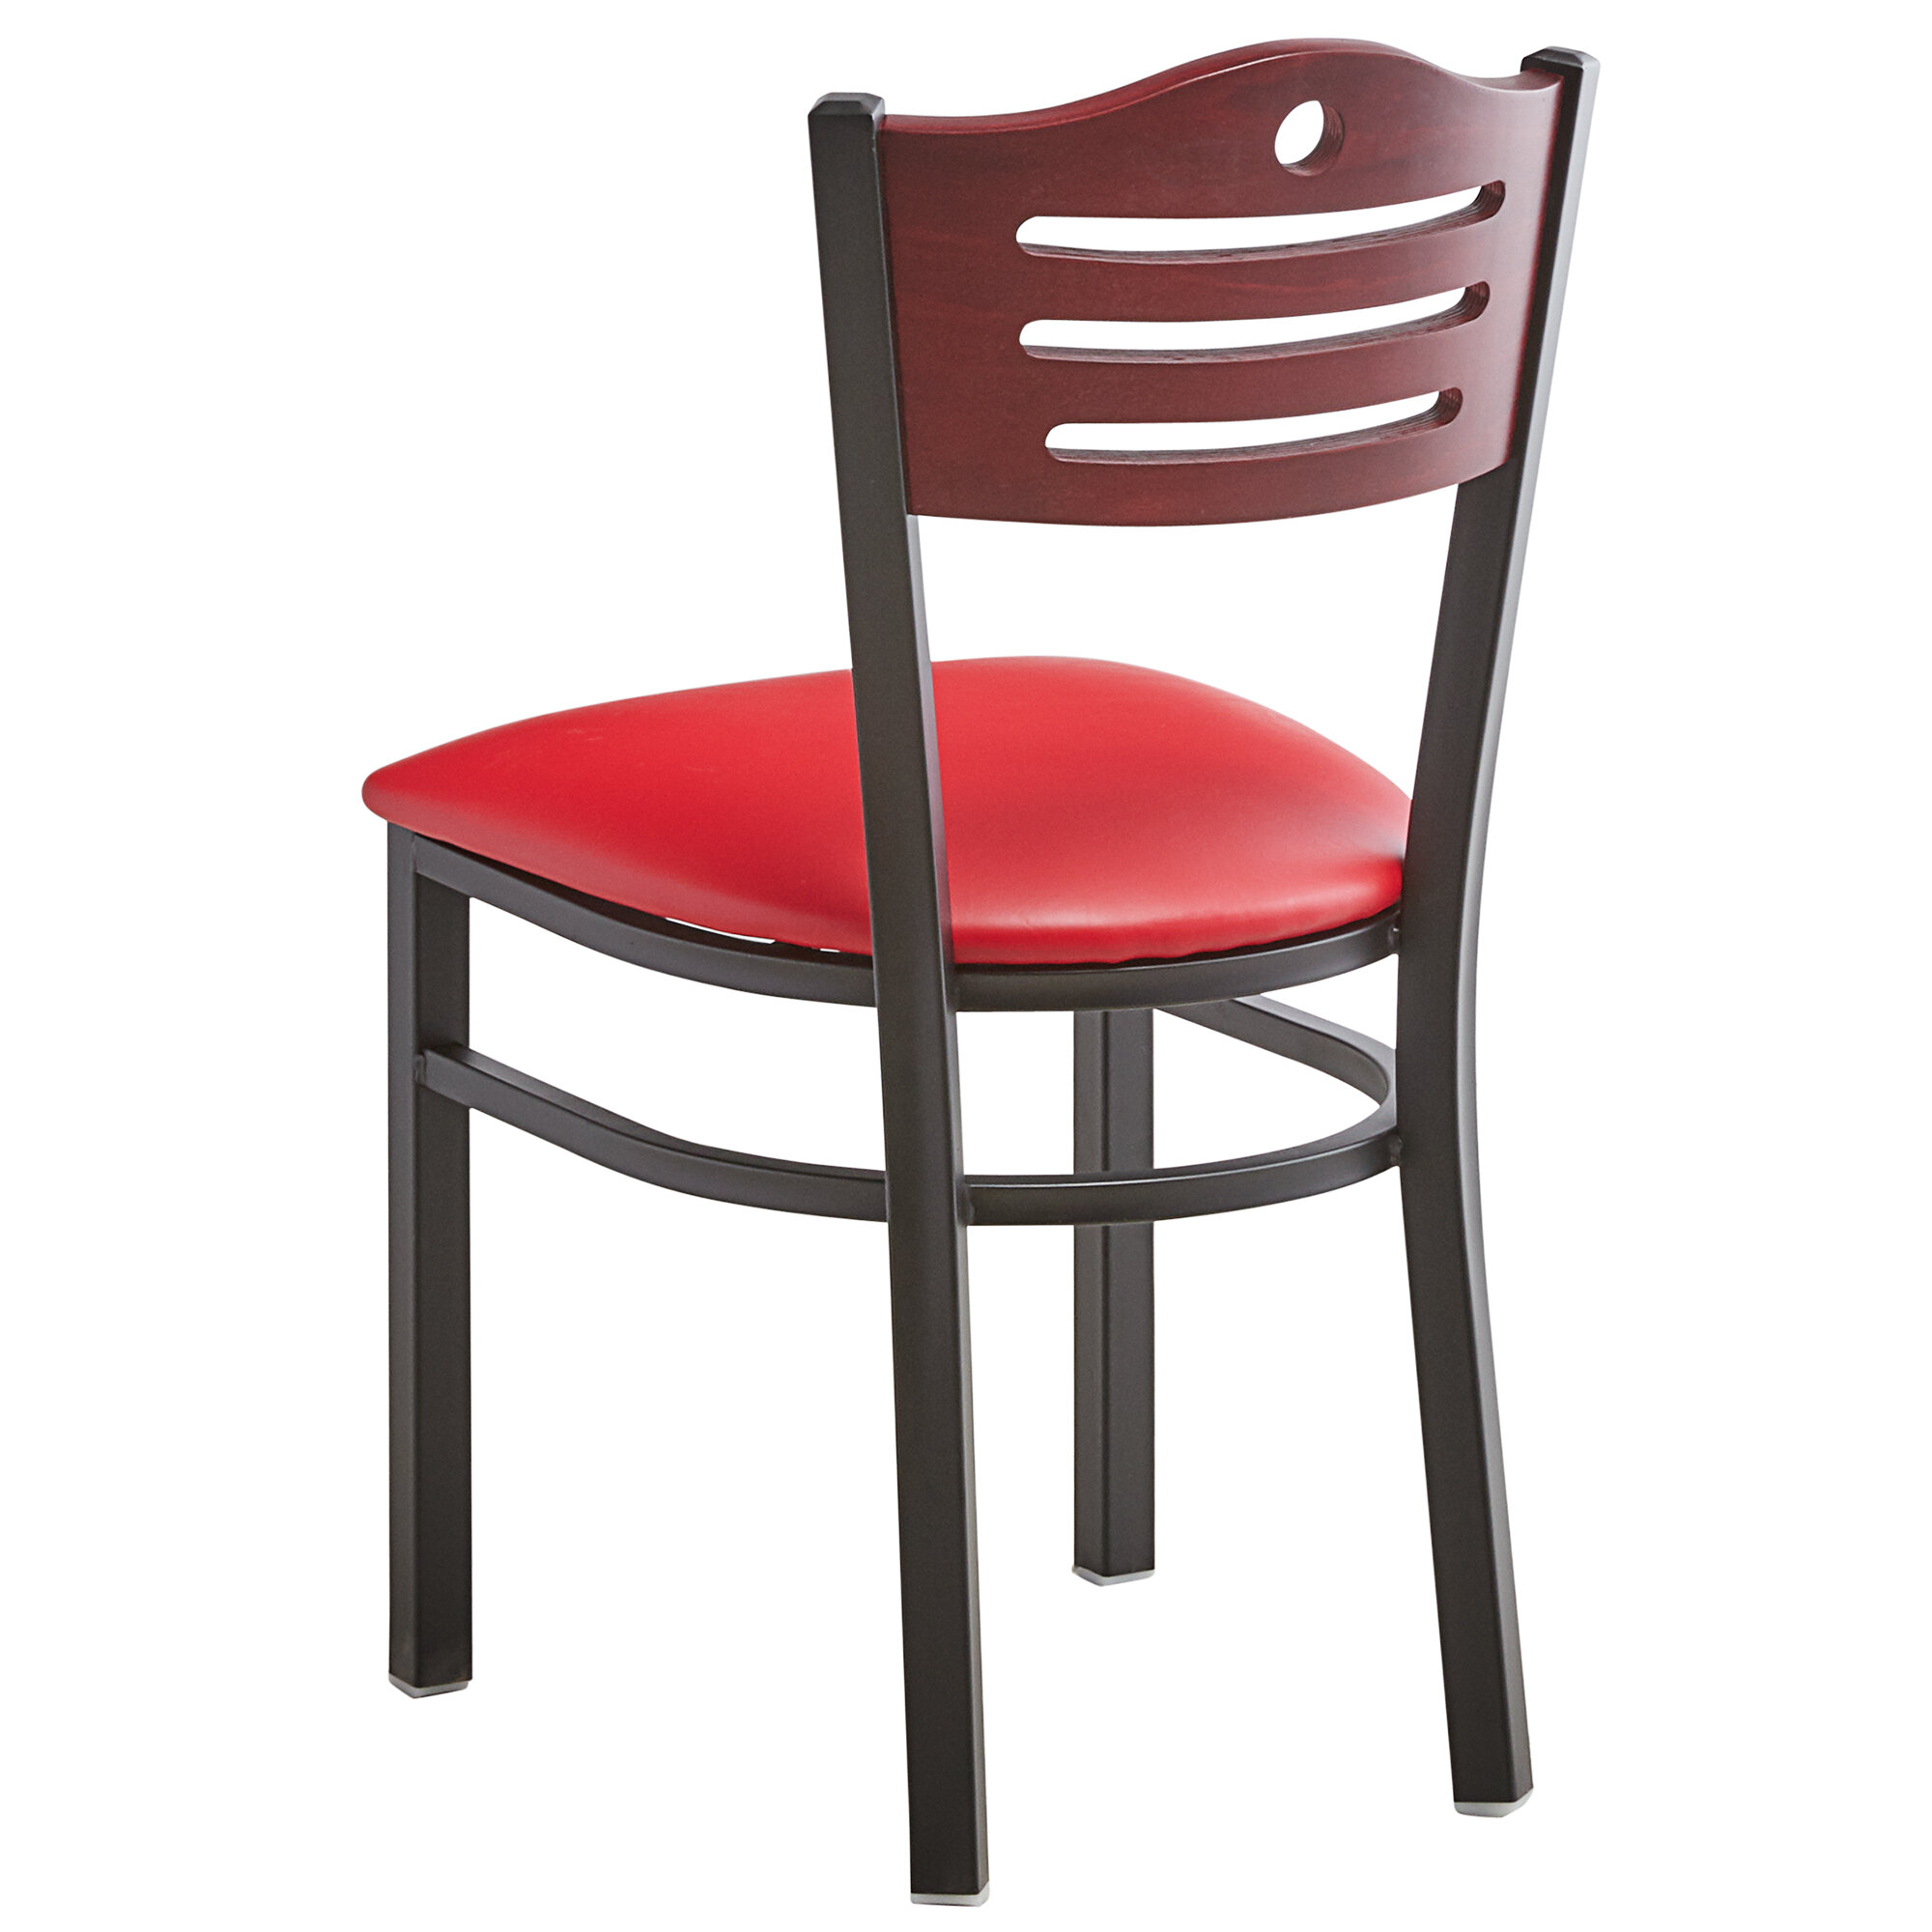 #185 - Slat Back Design Restaurant Metal Chair with Mahogany Wood Back and Red Vinyl Seat